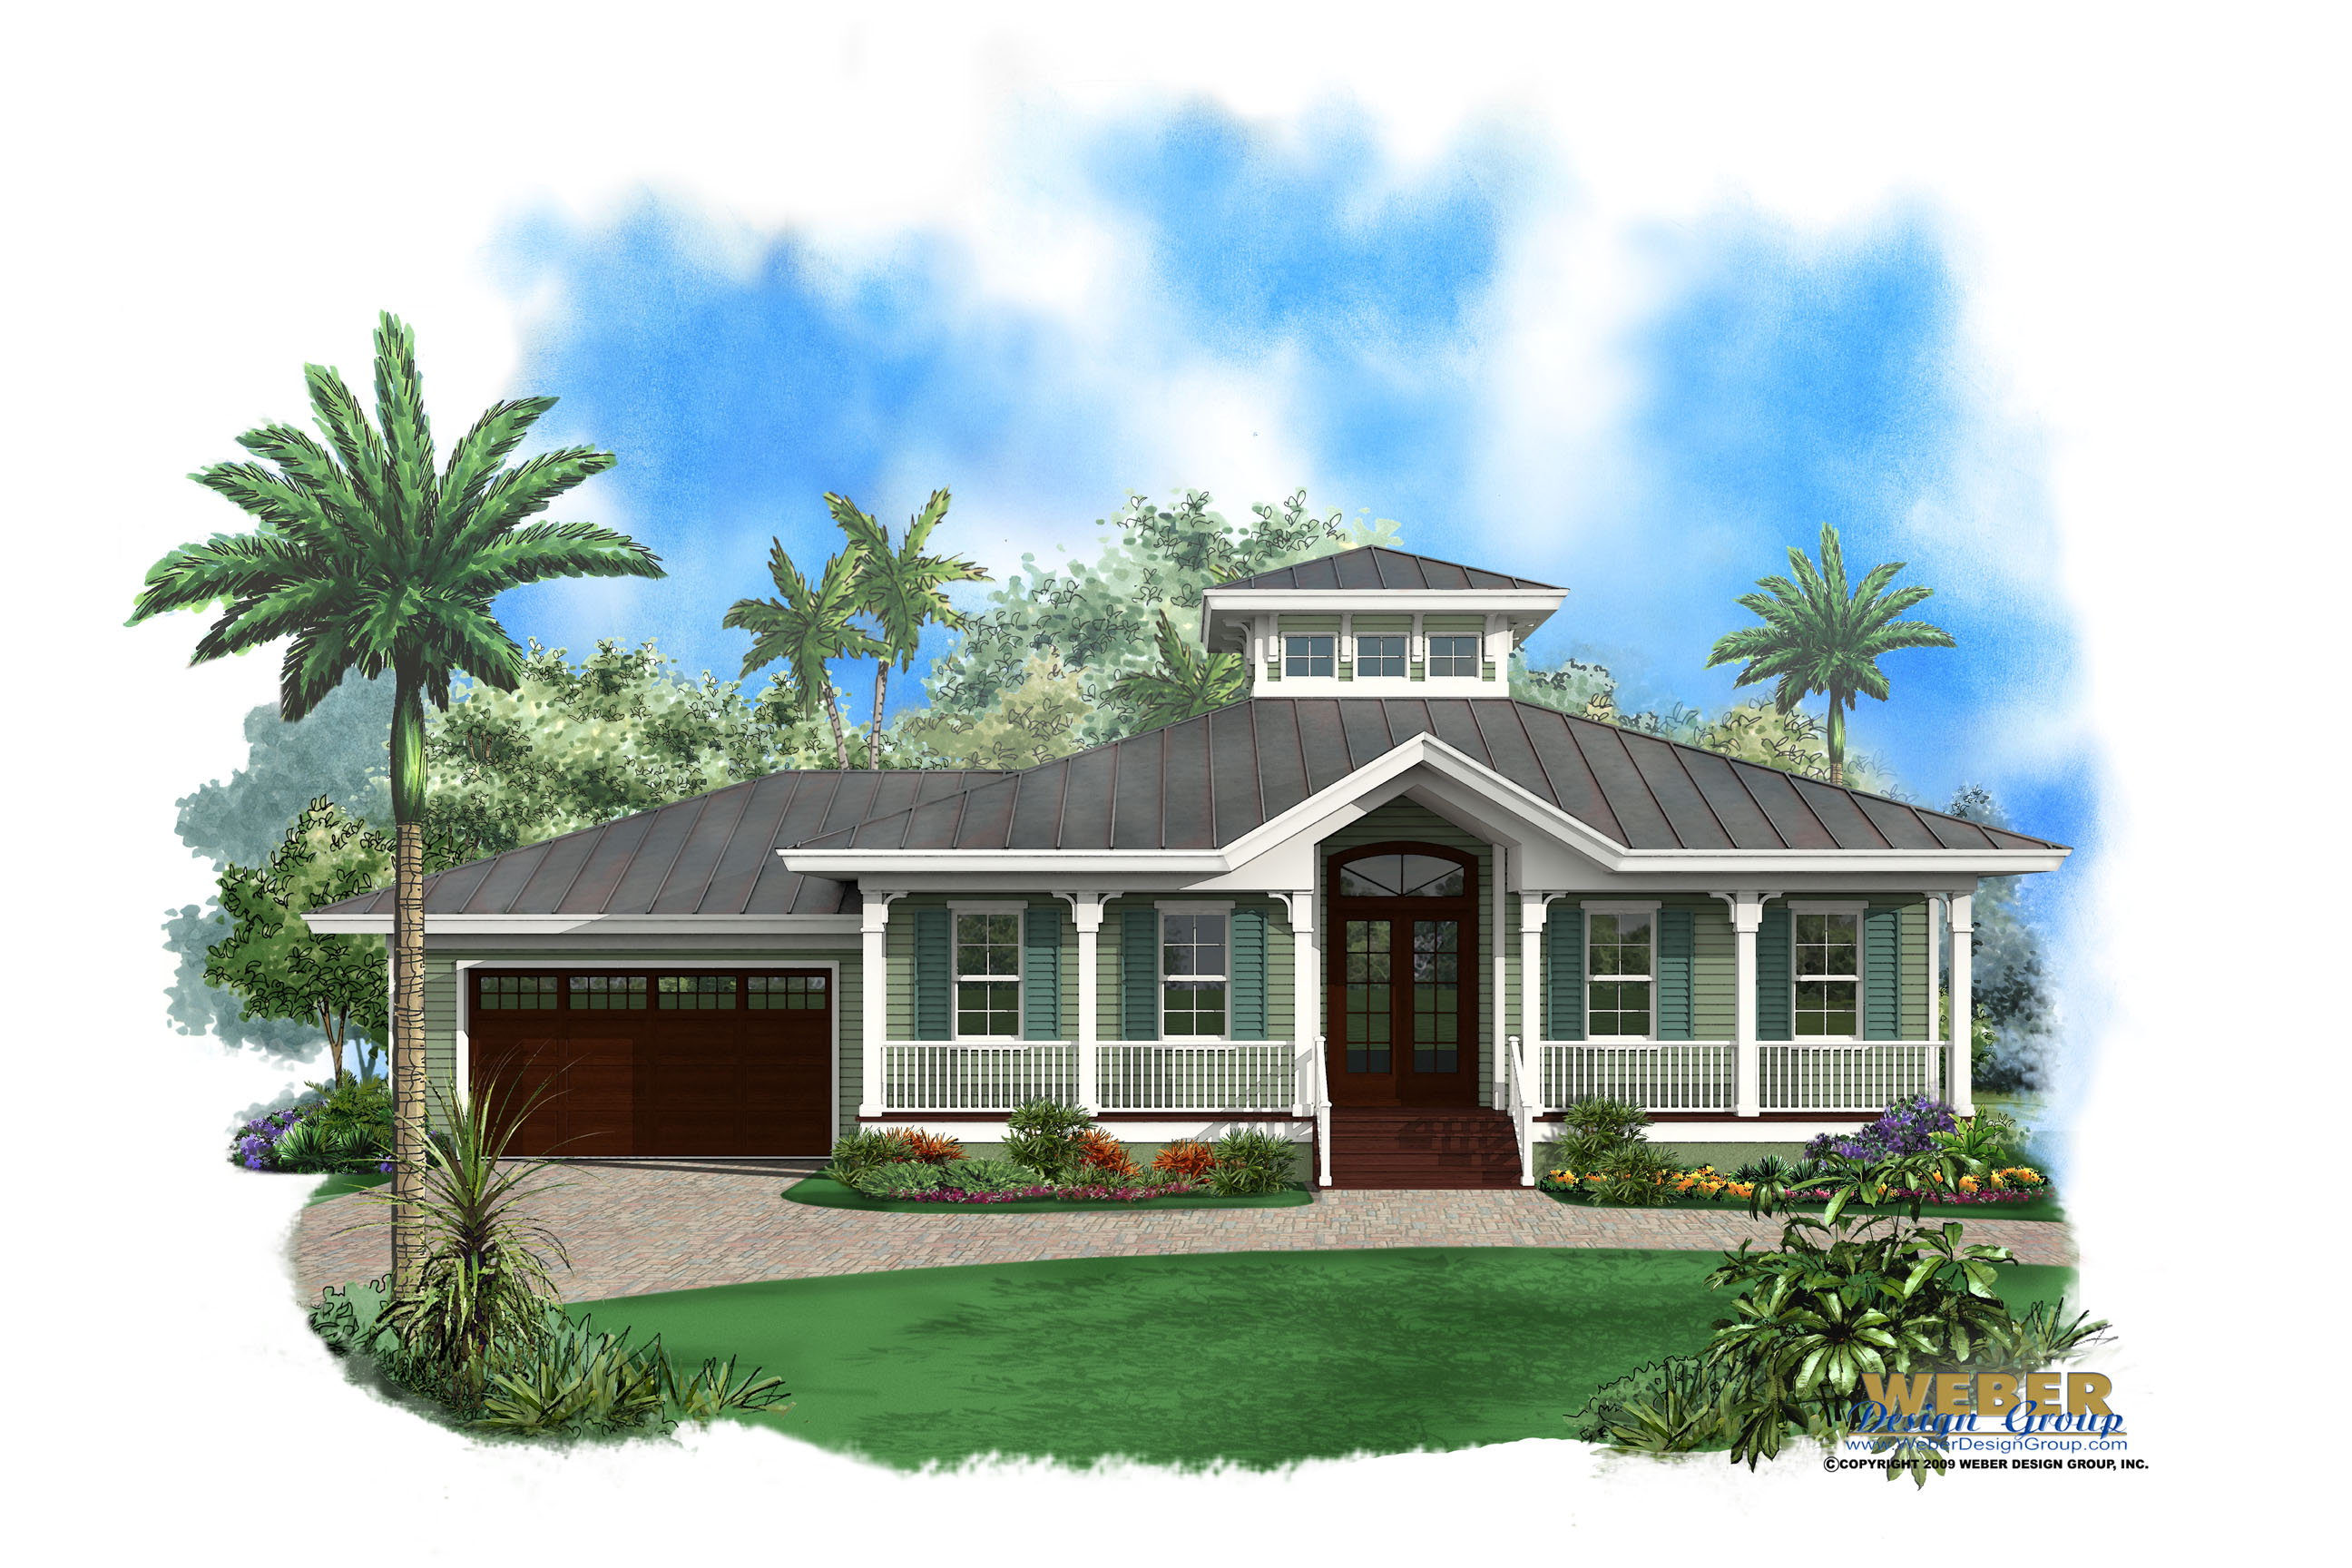 Olde florida home plans stock custom old florida cracker for Florida cracker house plans wrap around porch